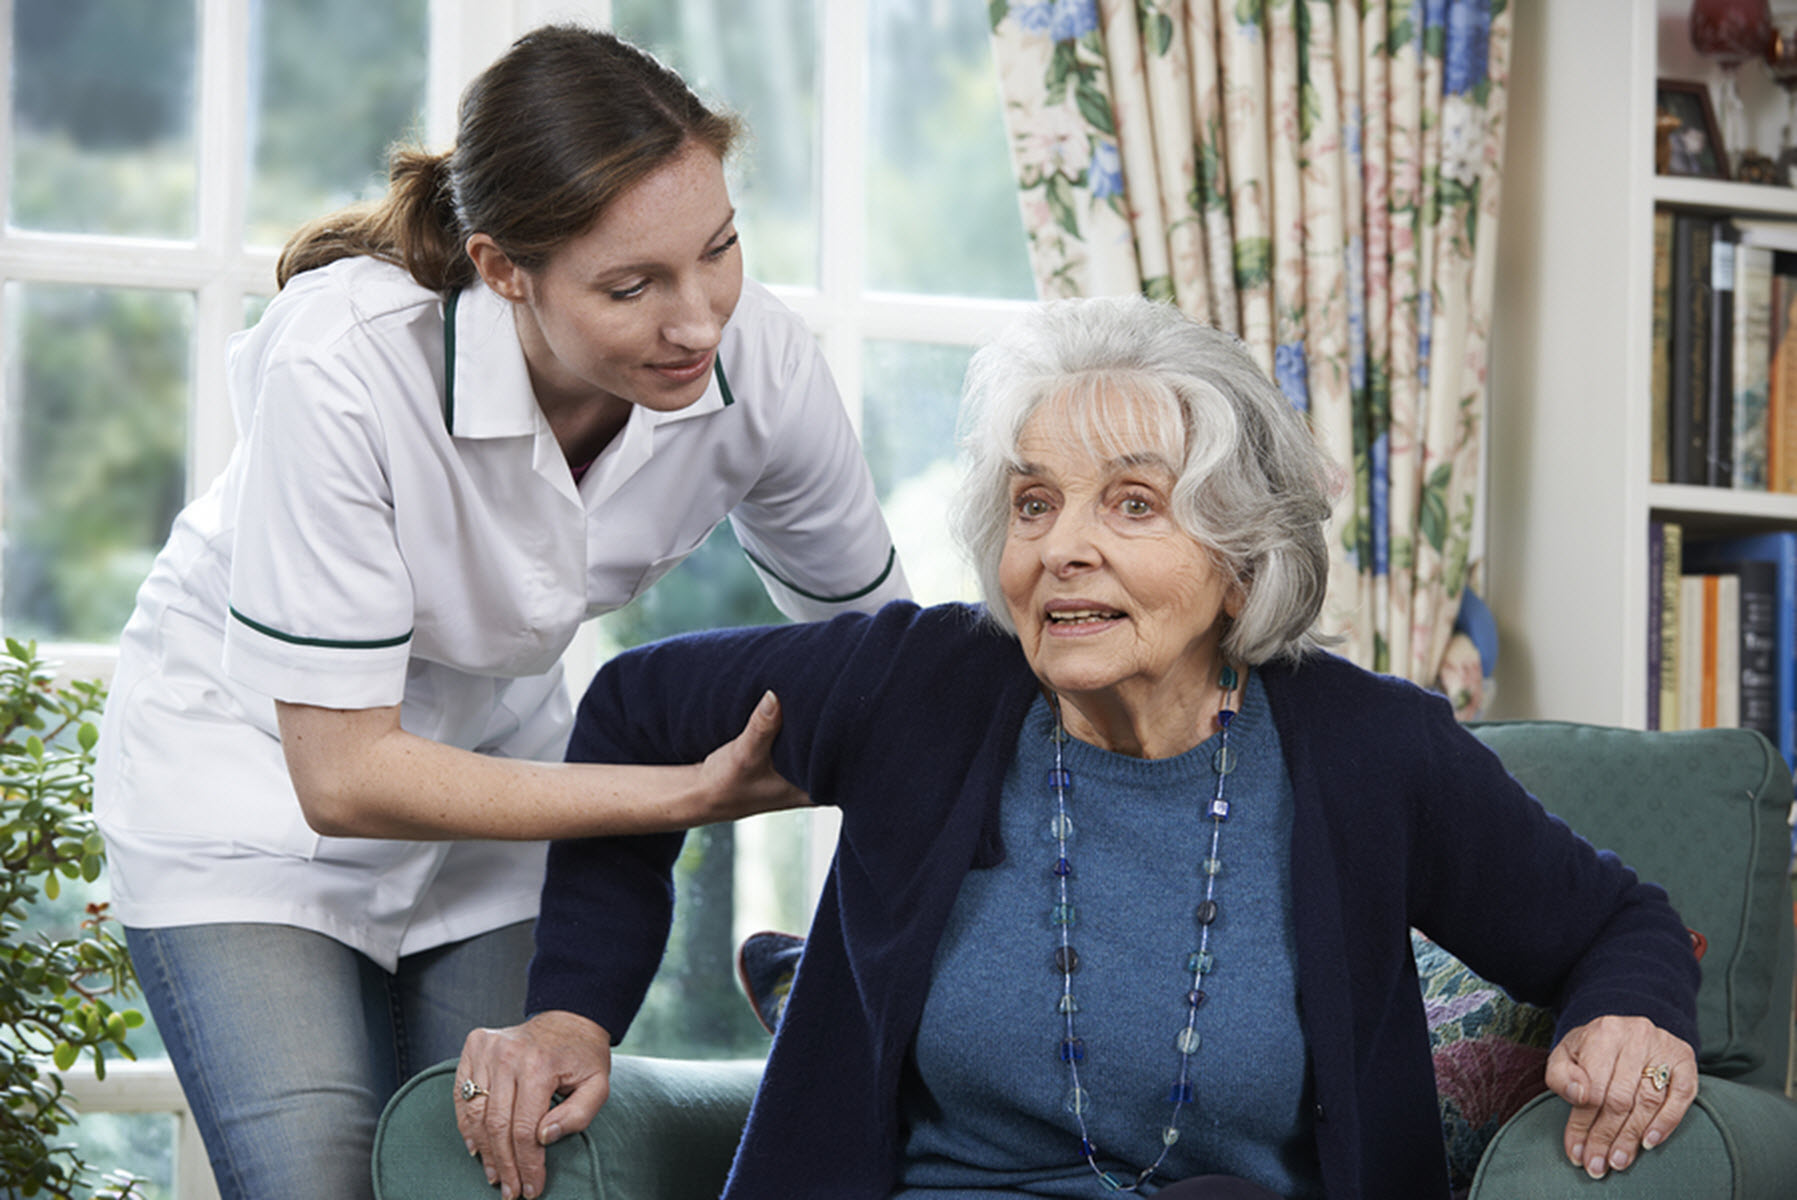 Caregiver in Gilbert AZ: Convincing Your Senior to get Help